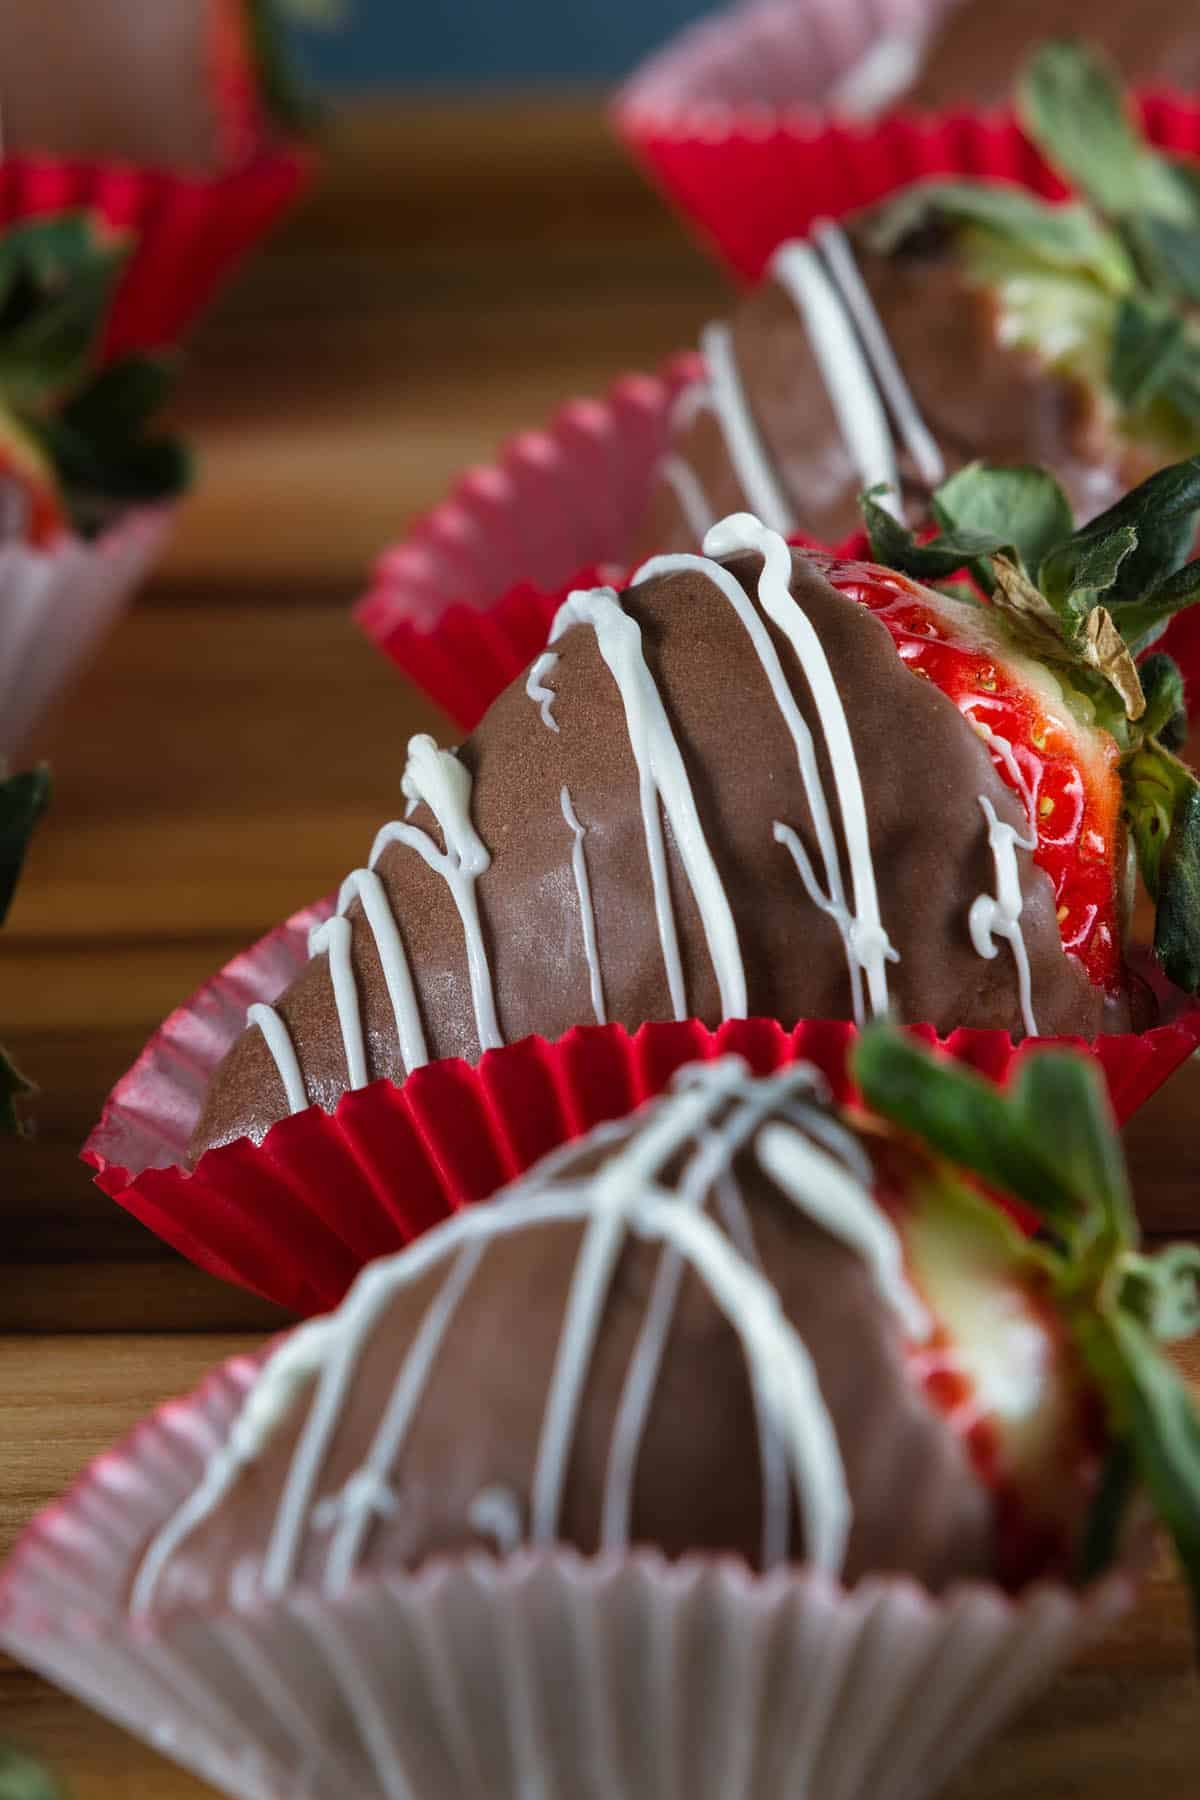 Spicy Chocolate Covered Strawberries